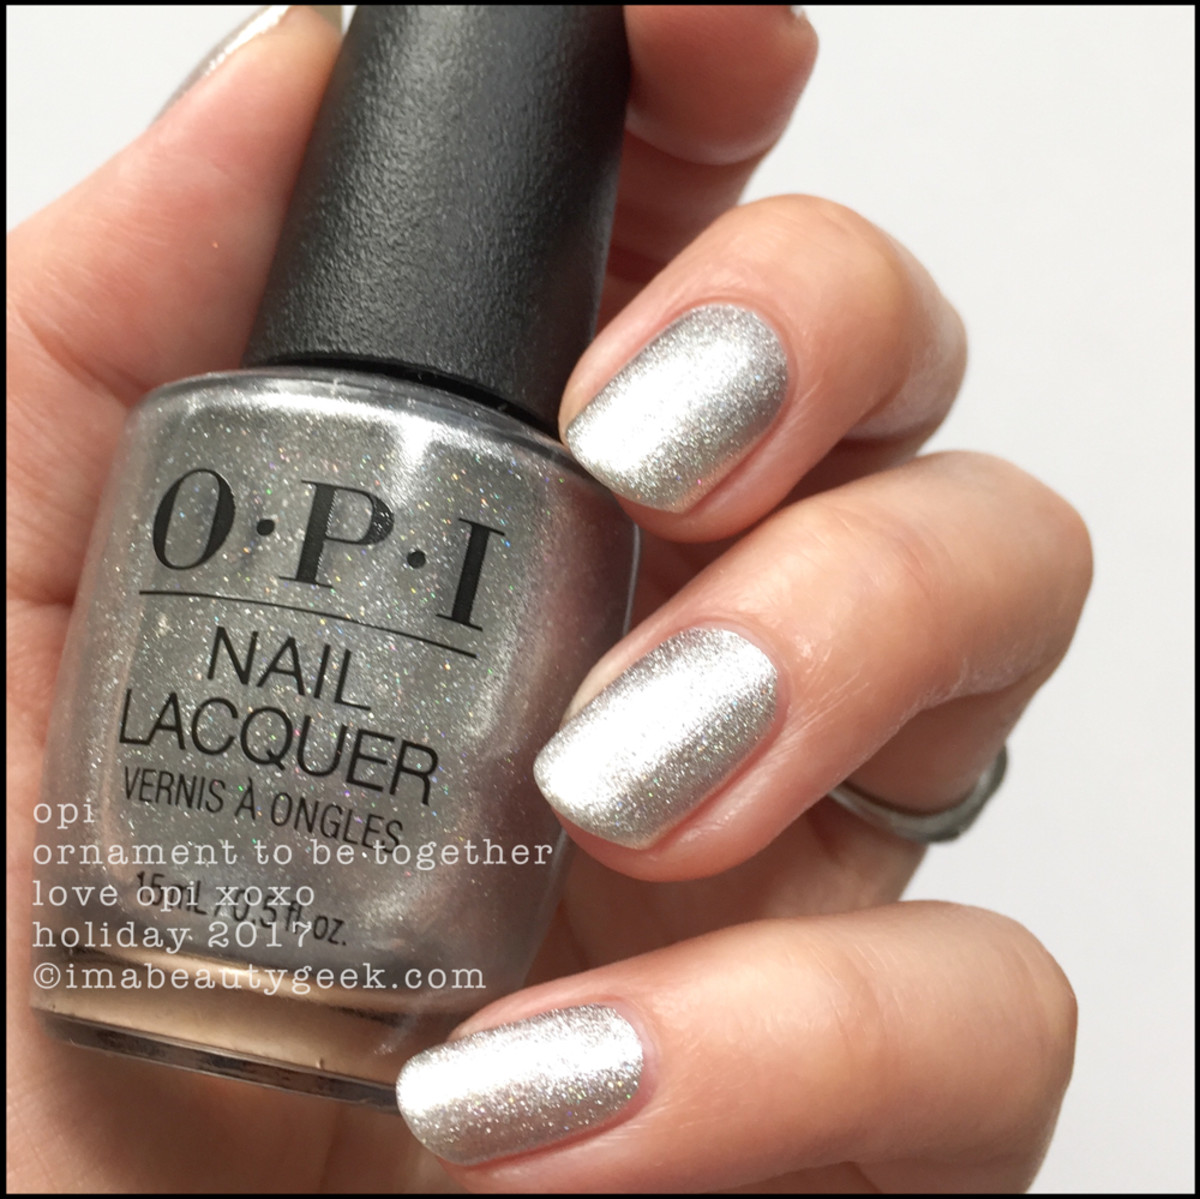 LOVE OPI XOXO SWATCHES REVIEW HOLIDAY 2017 - Beautygeeks